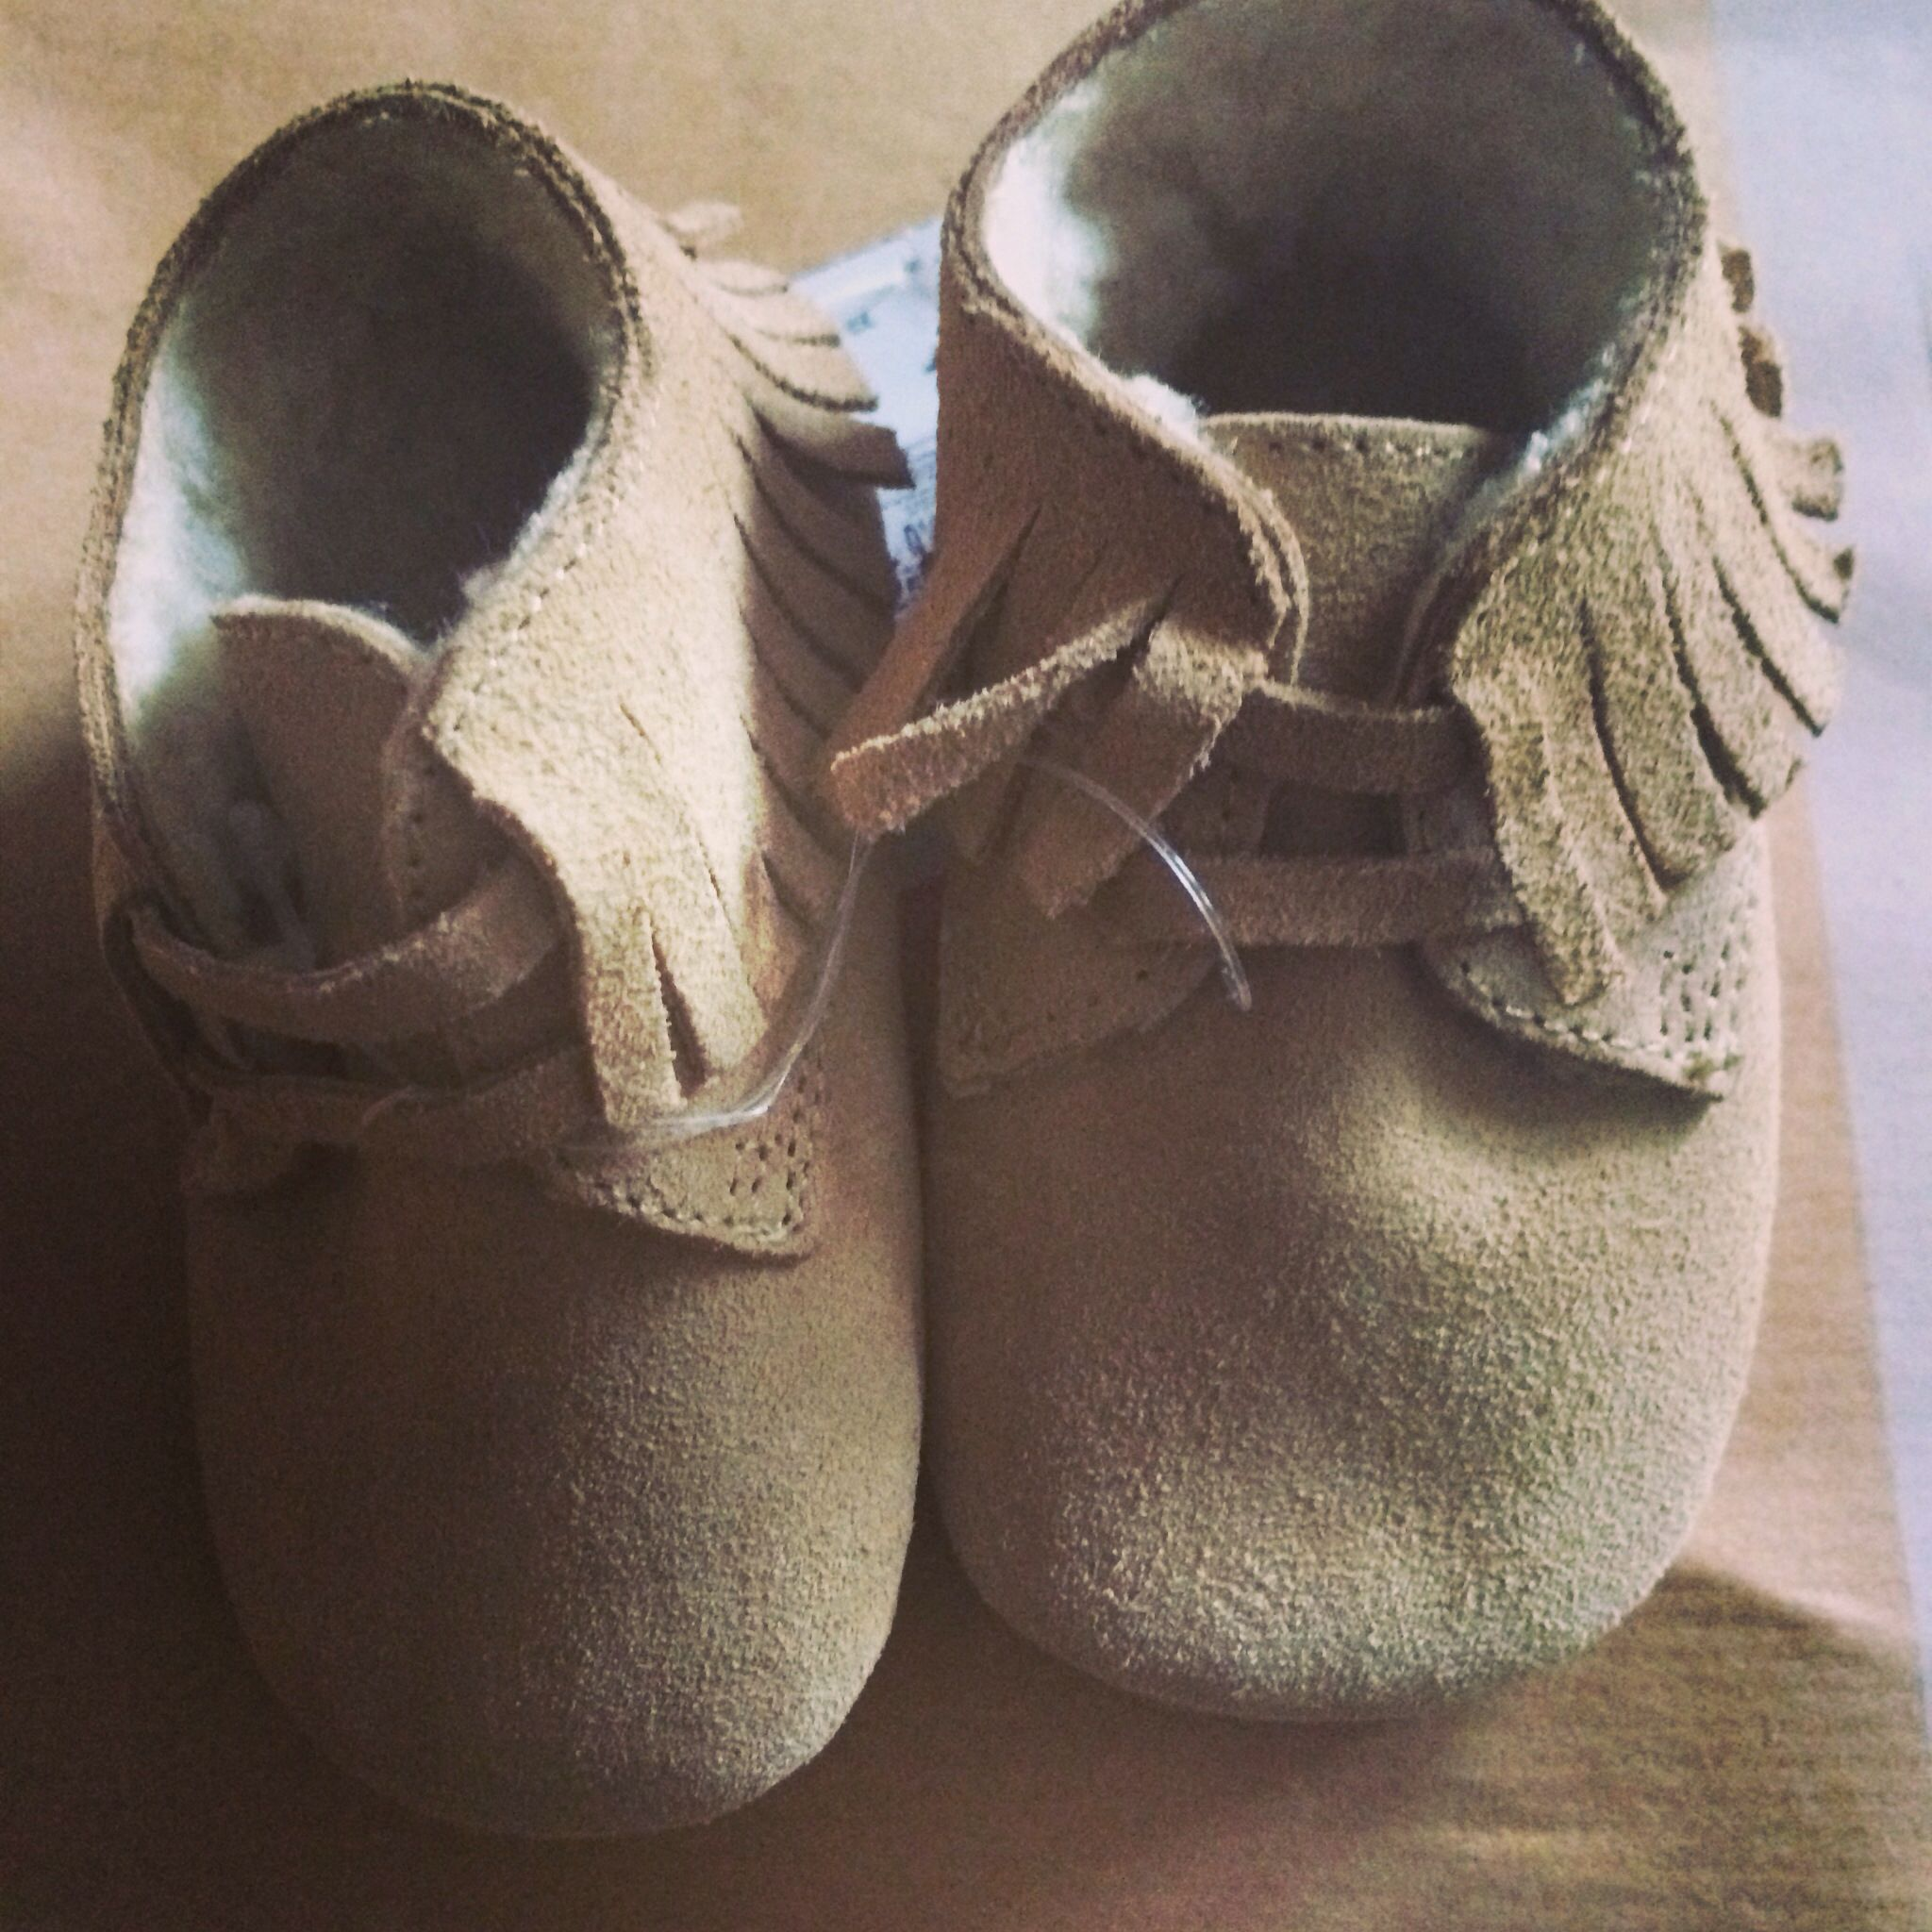 Baby Moccasins From Zara mini (With images) | Baby ...